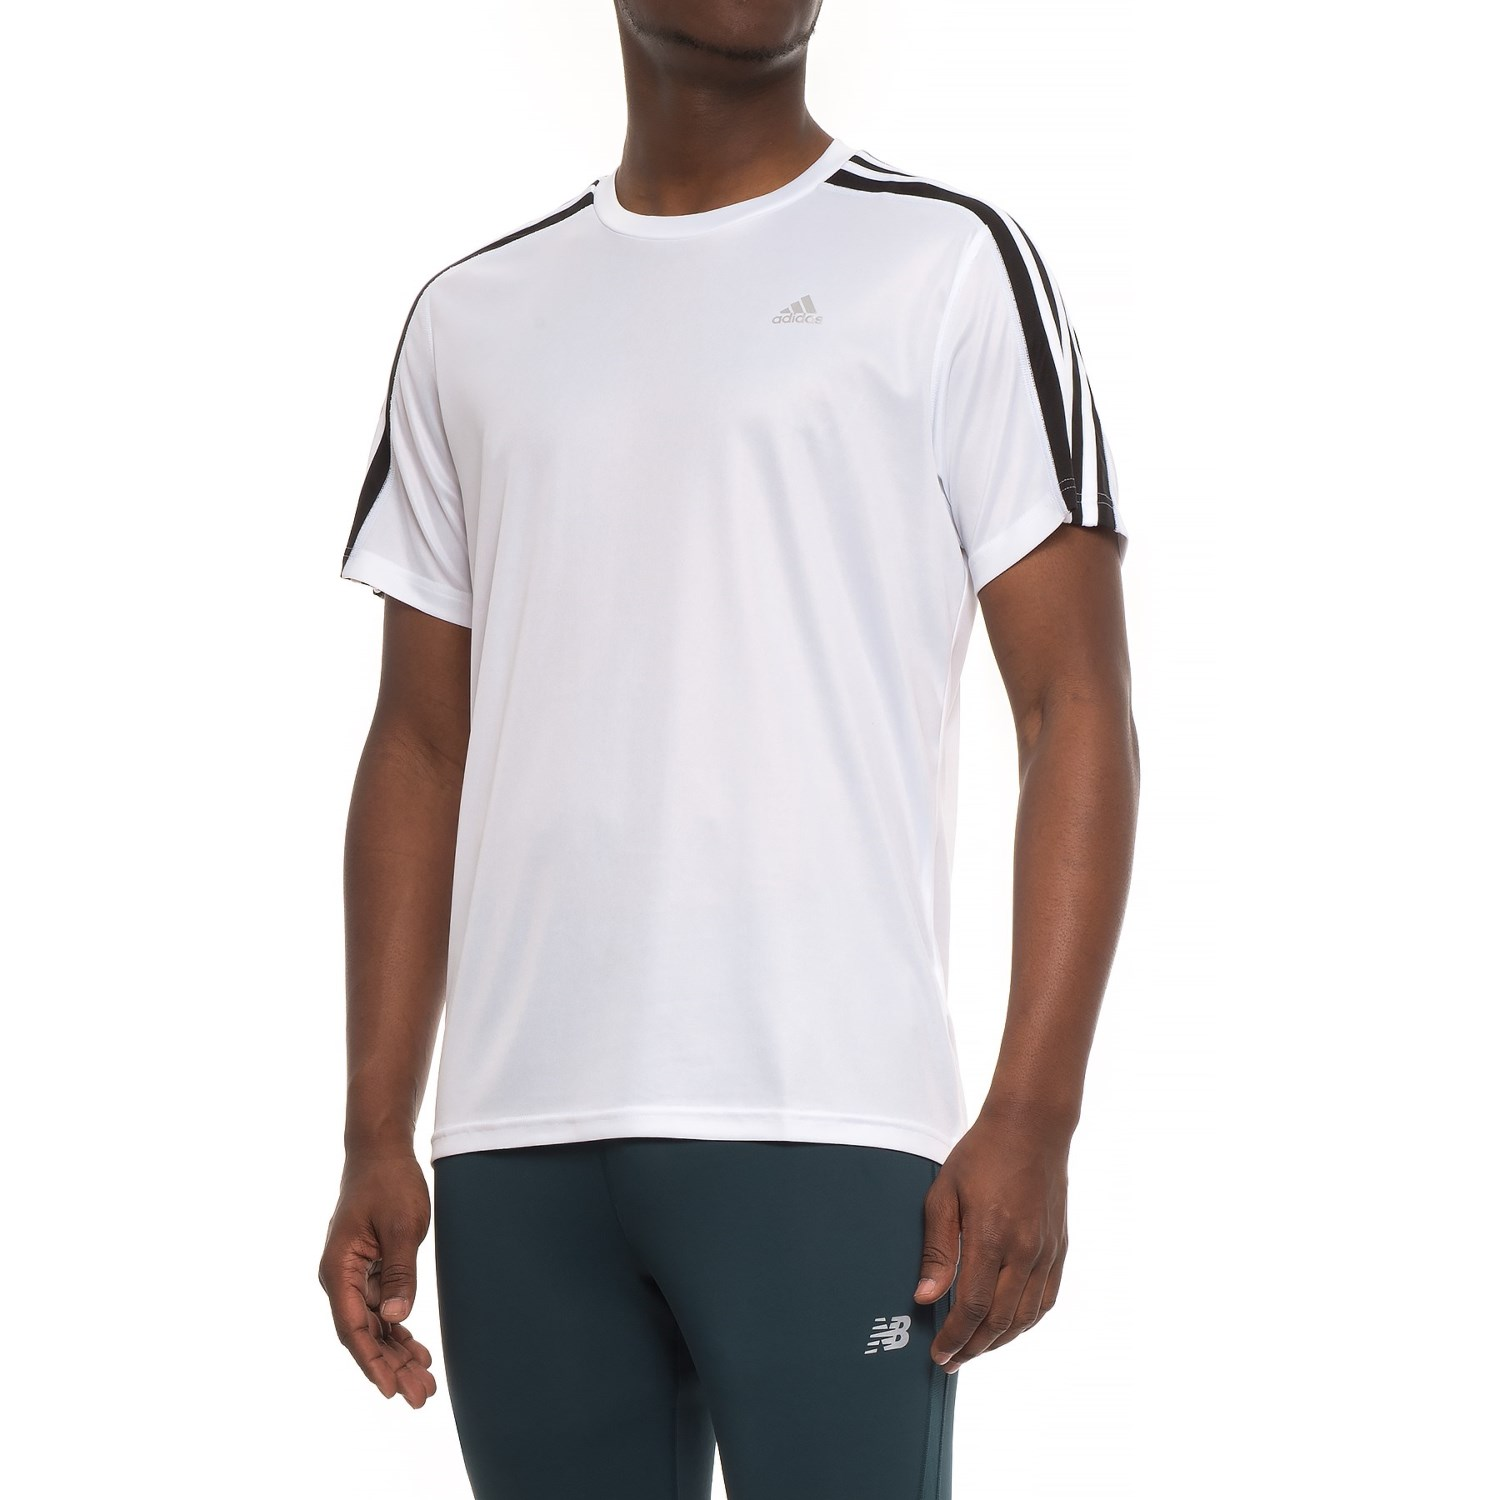 d8598ffd1ab3b0 adidas 3S Athletic T-Shirt - Short Sleeve (For Men) in White  ...